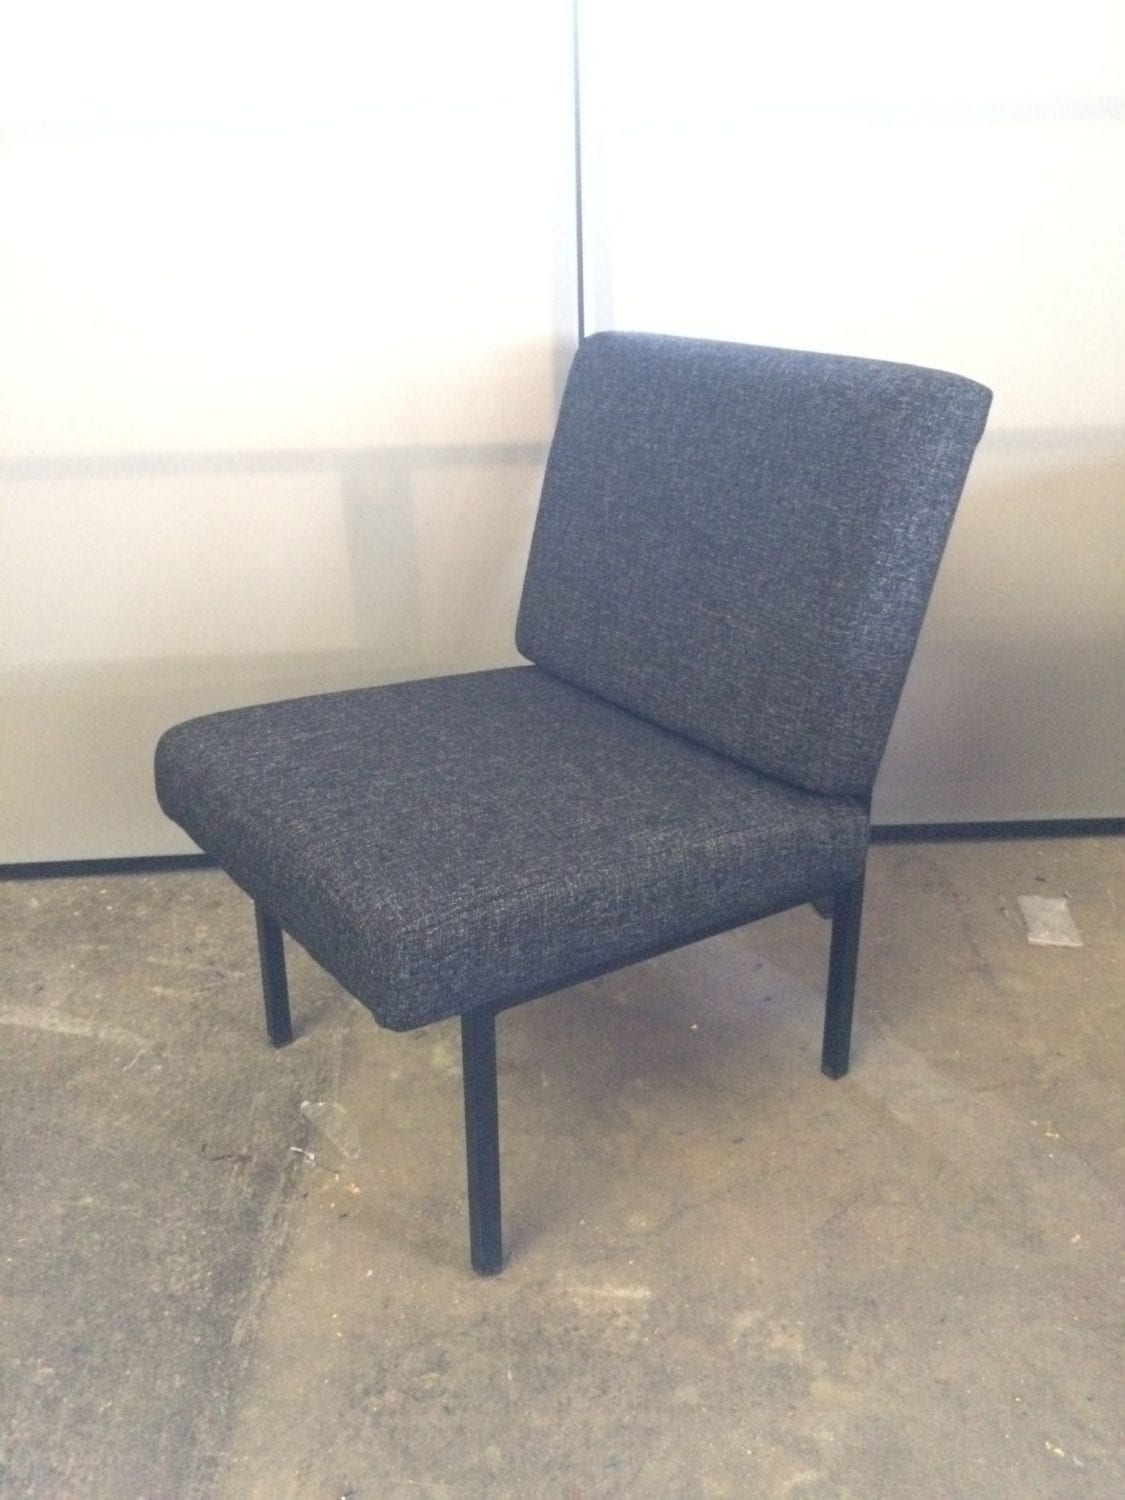 #816F4A Reception Chairs Penningtons Office Furniture with 1536x2048 px of Most Effective Office Furniture Bench Seating 20481536 wallpaper @ avoidforclosure.info